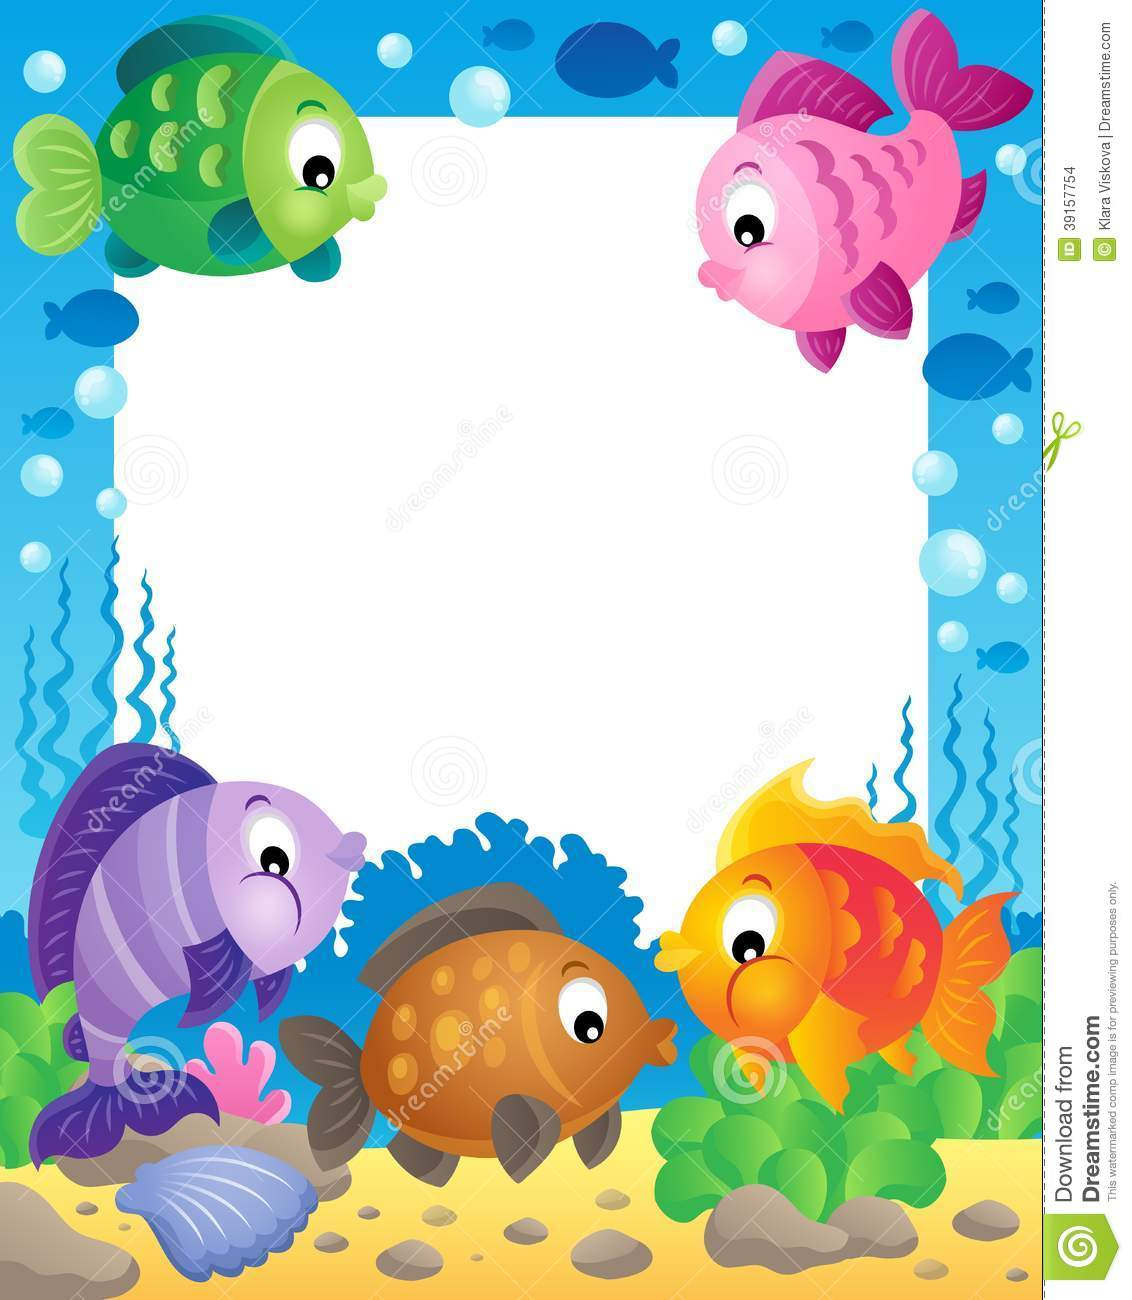 fish theme frame 1 stock vector illustration of eps10